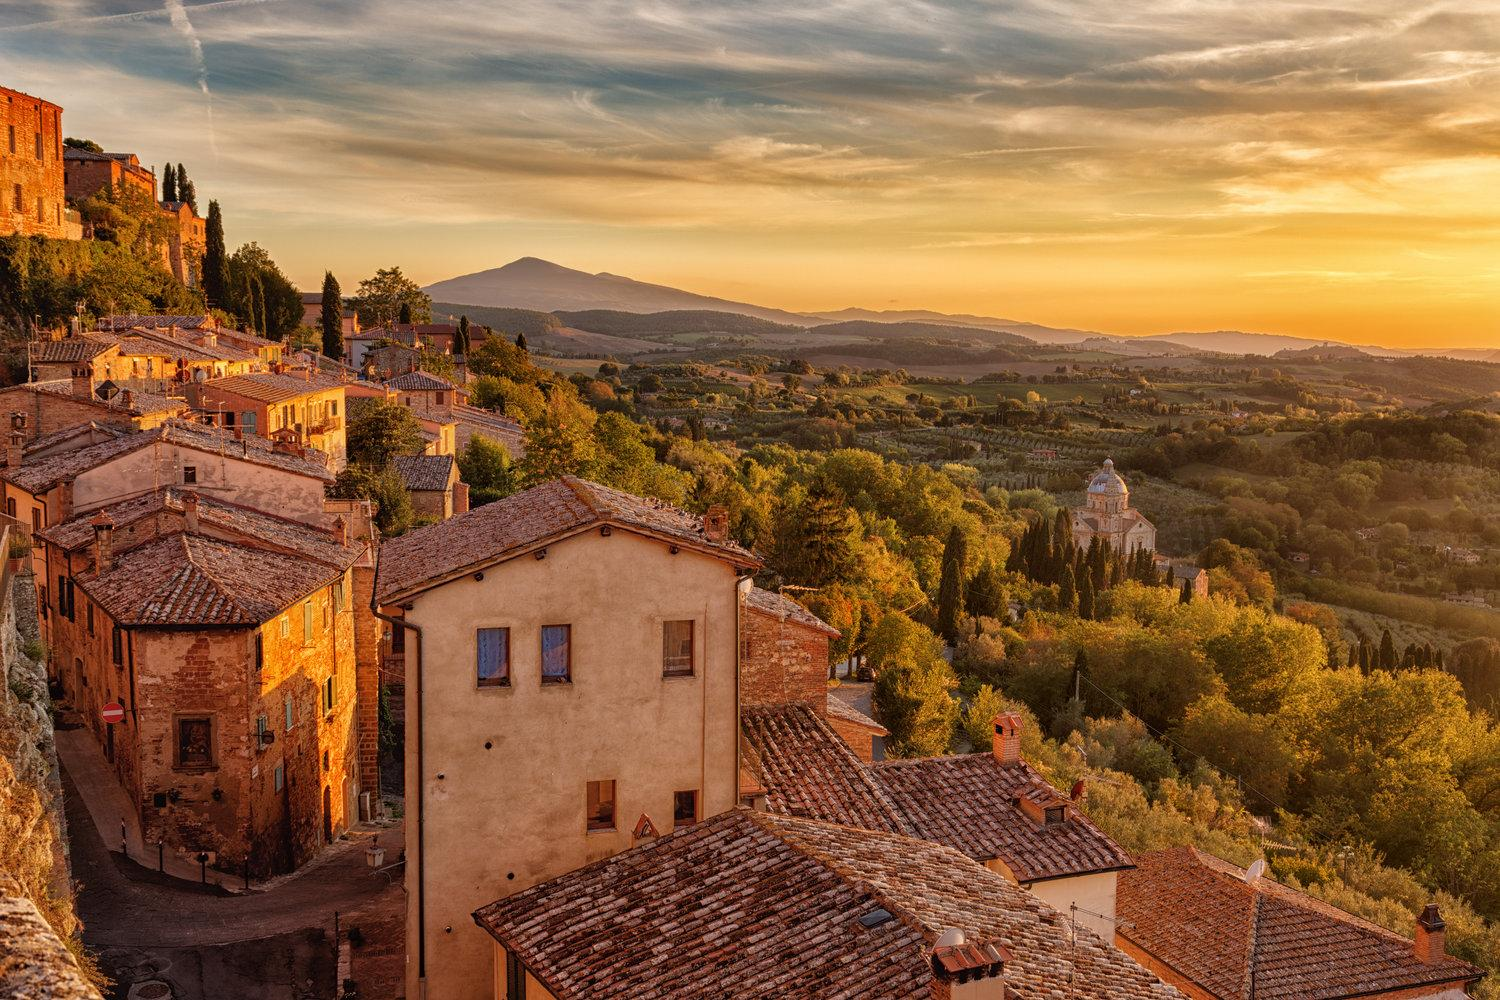 Discover the best hilltop towns of Montepulciano, Pienza, Montalcino and Buonconvento